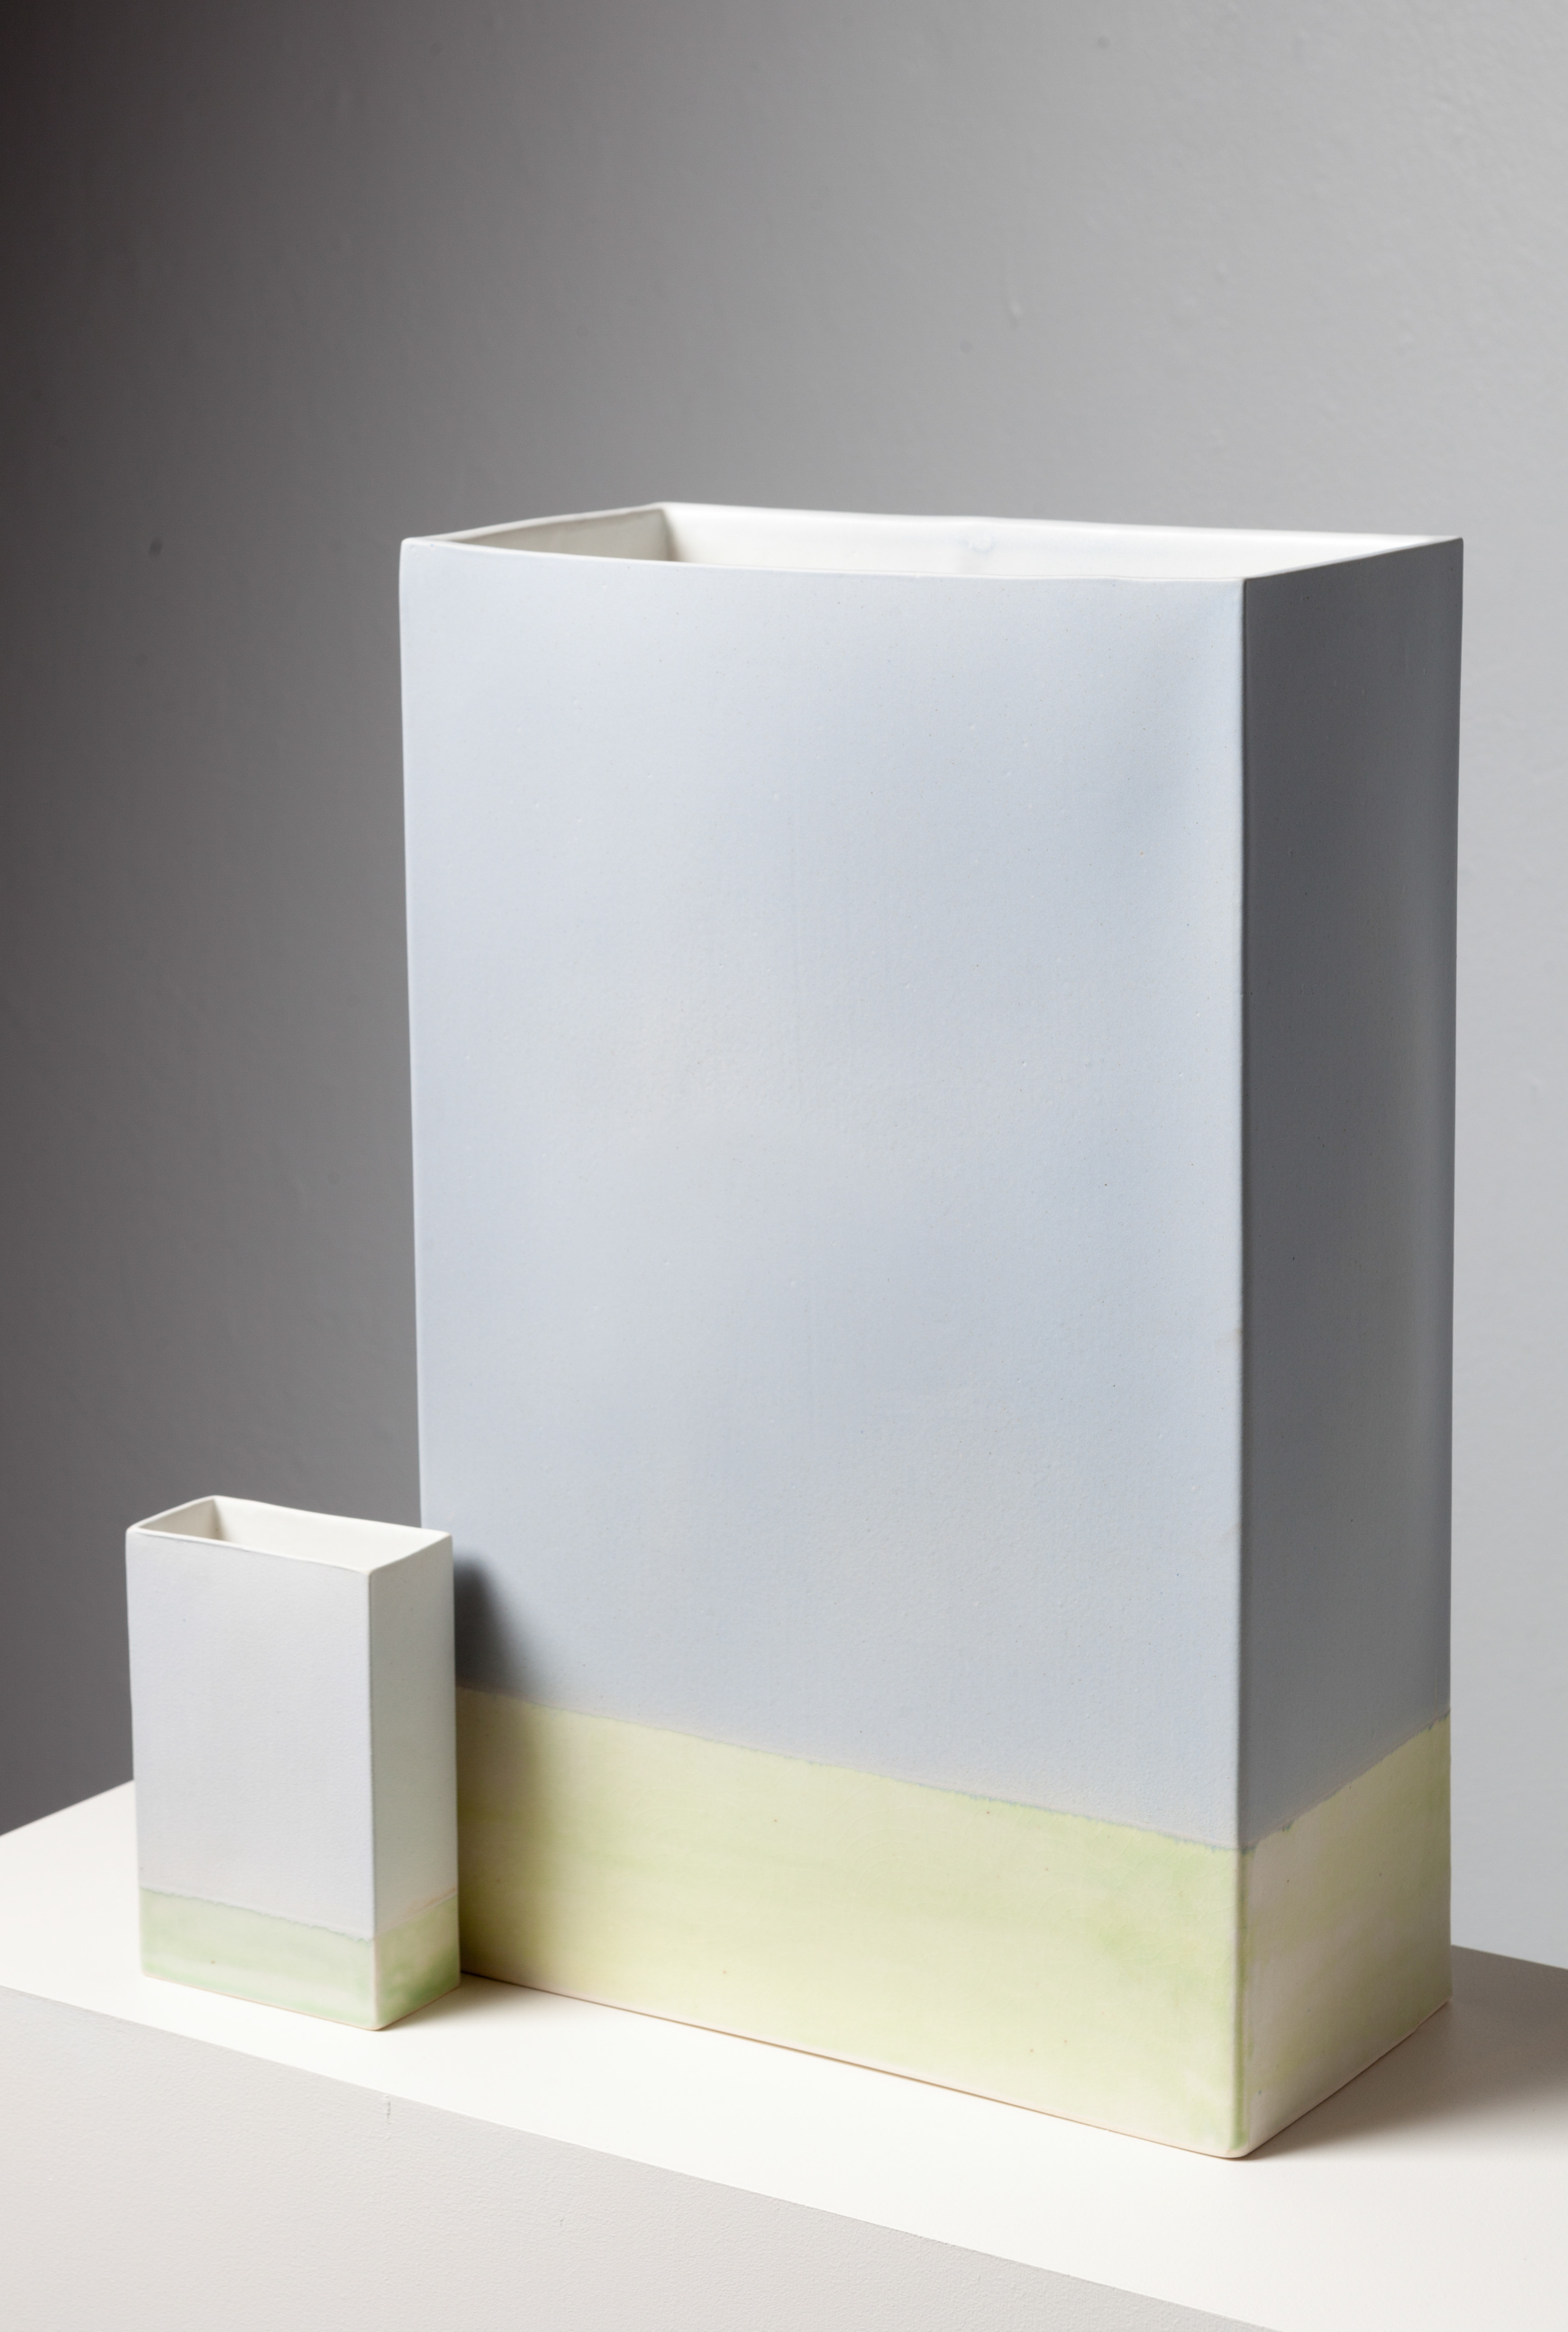 """Fabricated Slip Cast Rectangular Vessel and Maquette  (cast from a CNC milled plaster molds)  Cone 10 Oxidation White Stoneware  Larger Form 9"""" W"""" x 19"""" L x 22"""" H  2016"""